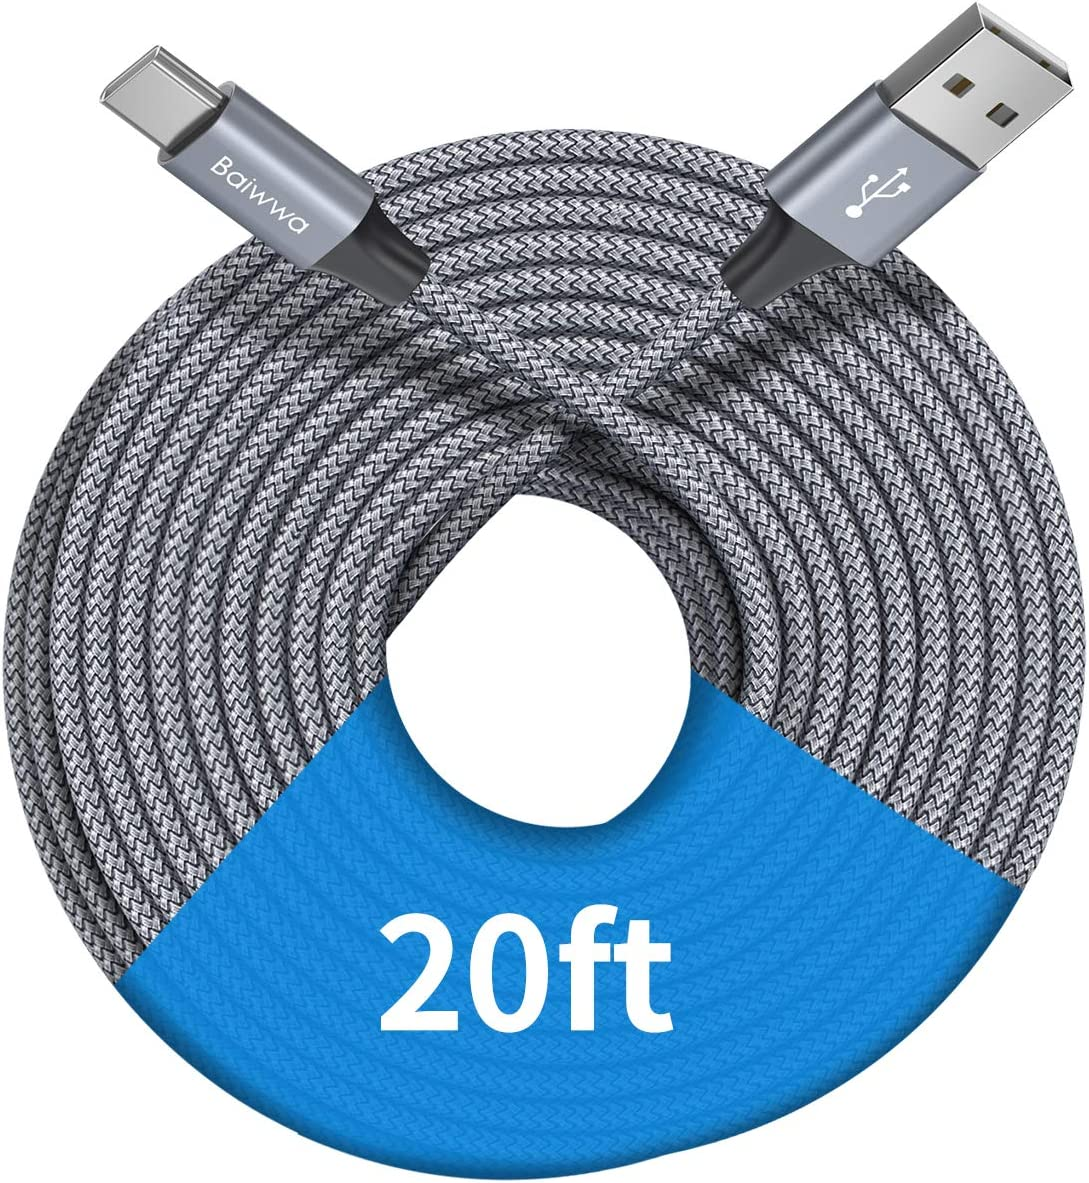 [ 20ft/6m ] Extra Long USB C Cable, Baiwwa Premium Nylon Braided USB A to Type C Cable Charger Cord Compatible with Samsung Galaxy Note Tab, Moto, LG, Sony, Google and More USB C Smartphone & Tablet